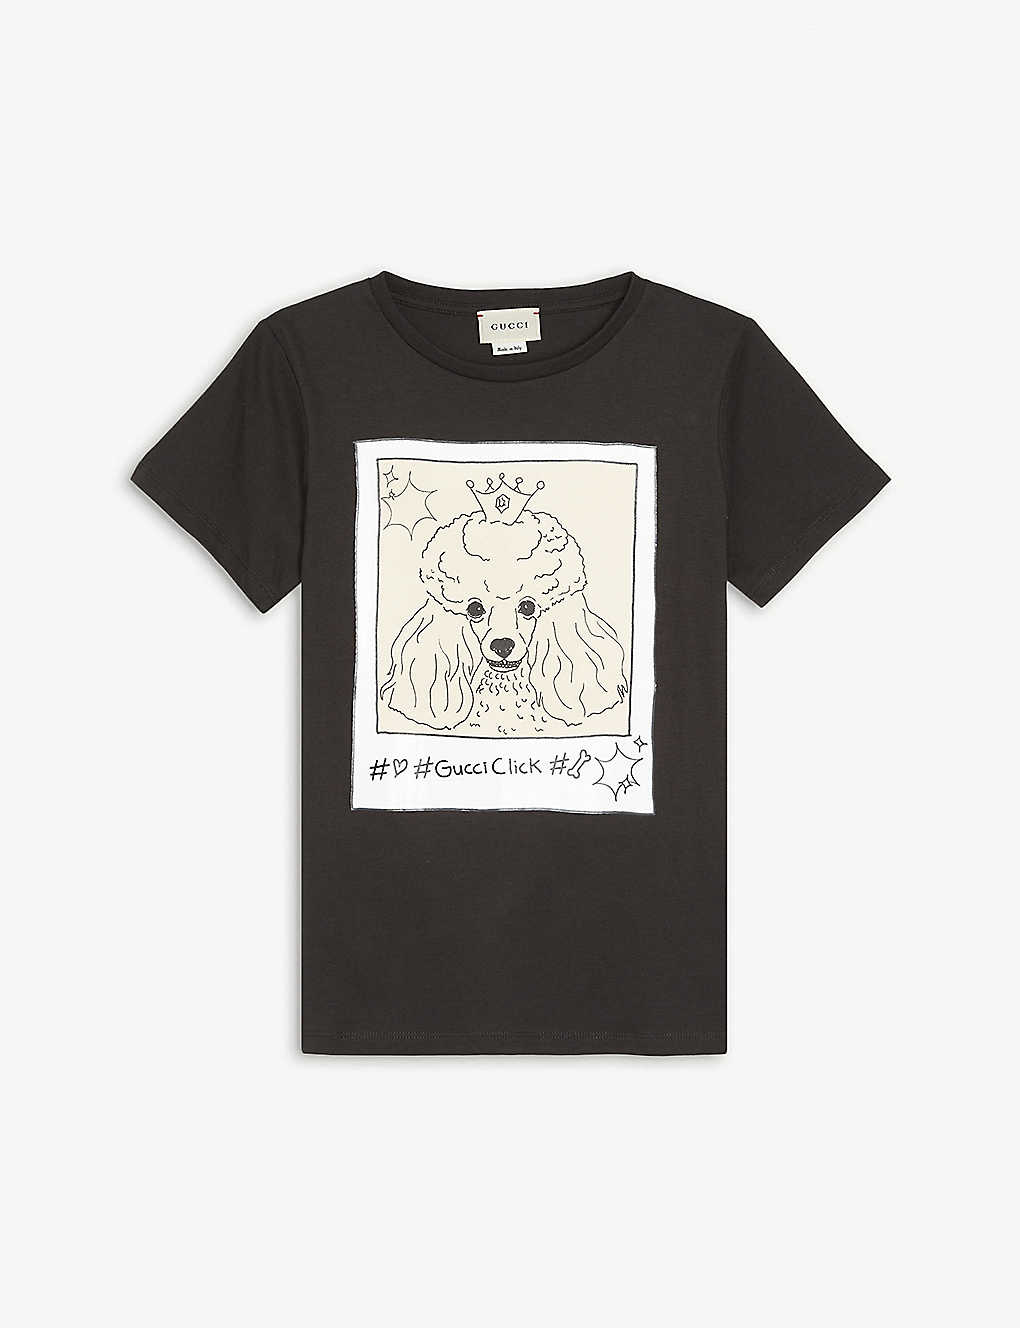 GUCCI: Gucci Click poodle-print cotton T-shirt 4-12 years